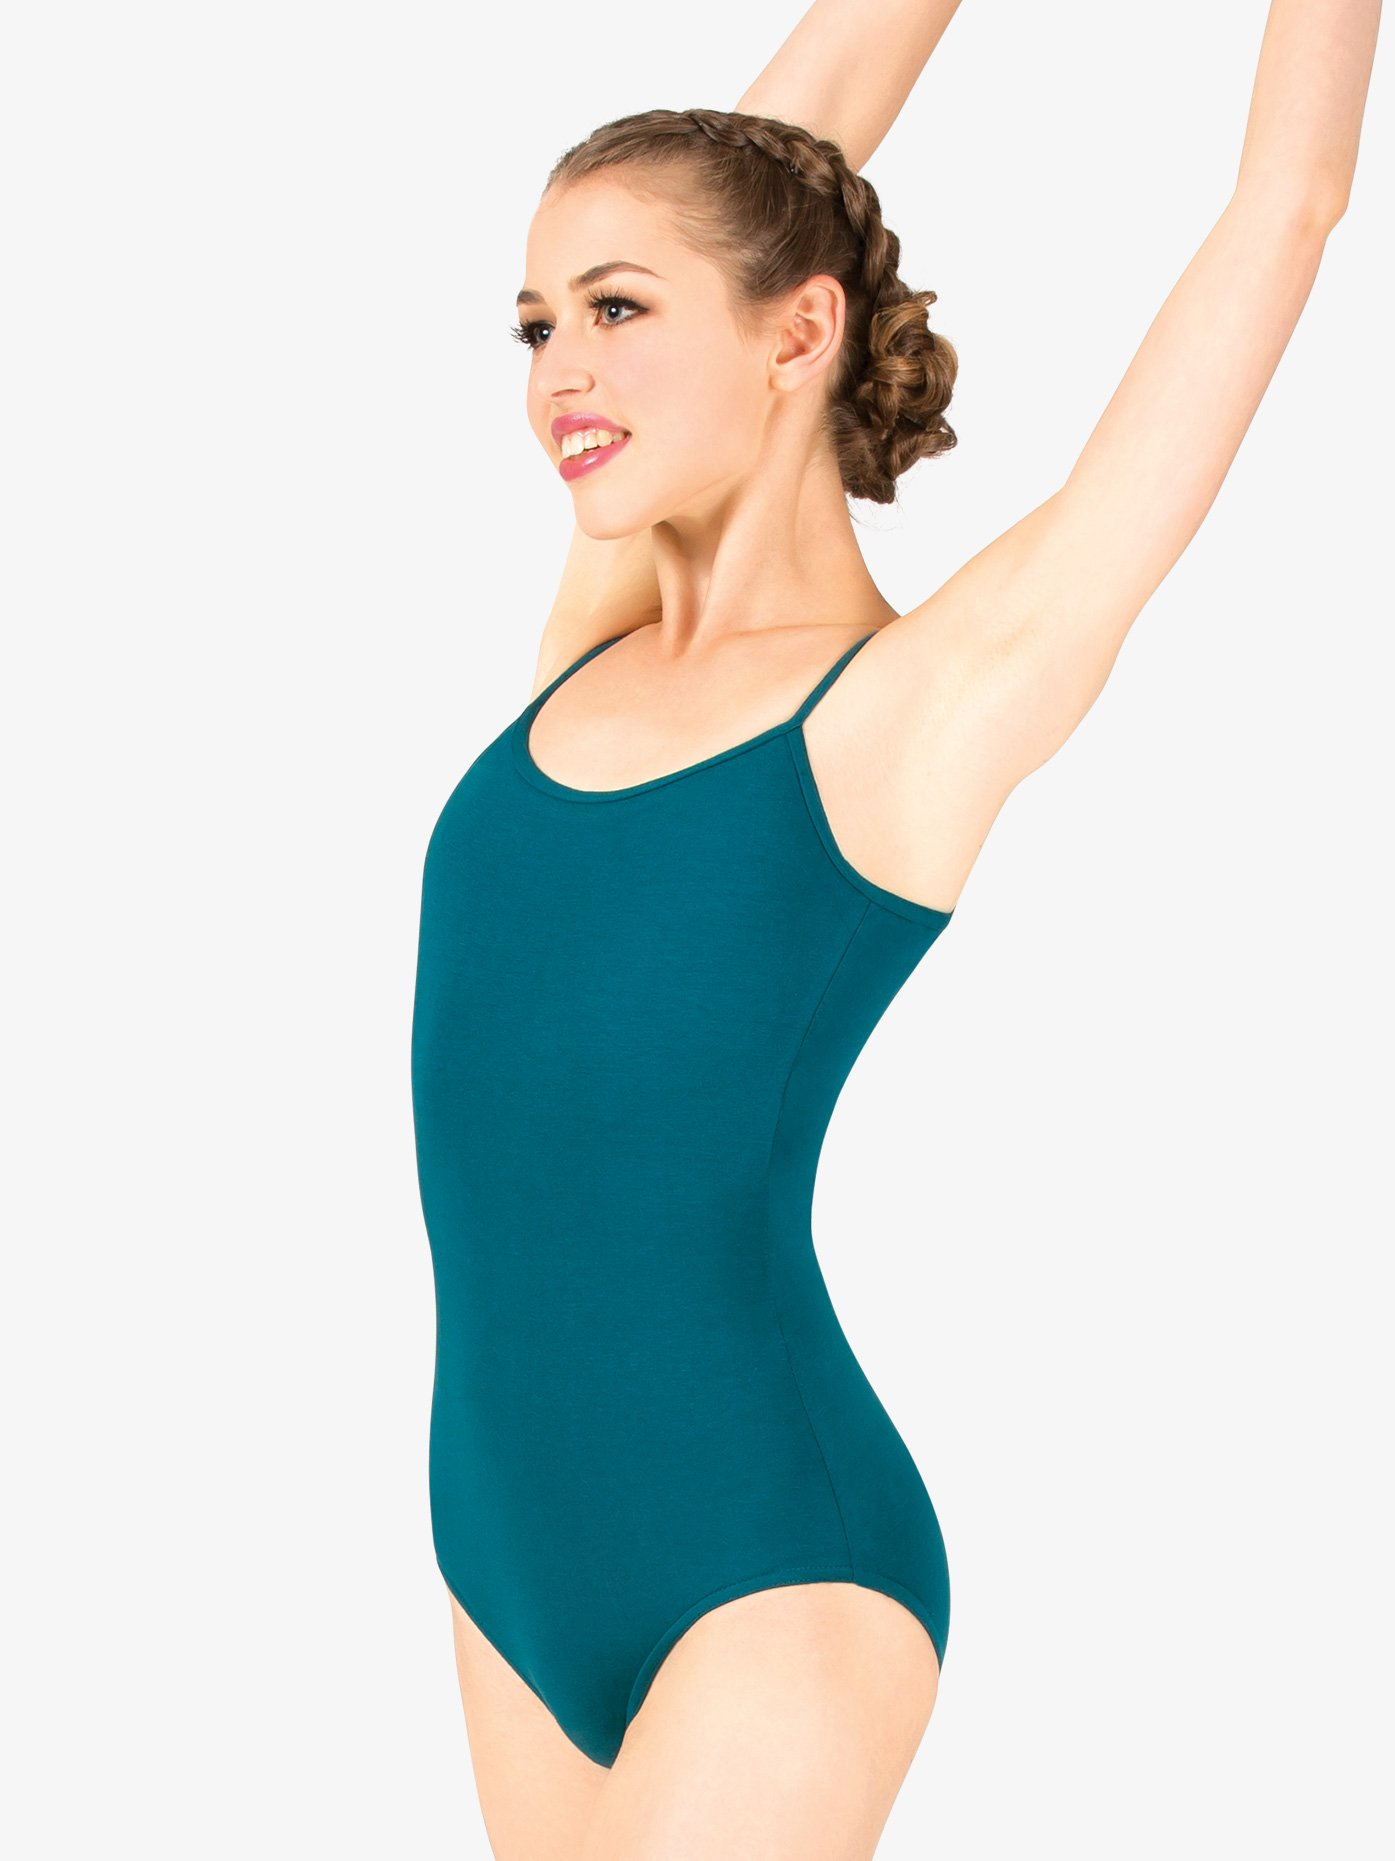 dfa4d5b78 Adult Camisole Cotton Dance Leotard - Style No N5500. Loading zoom